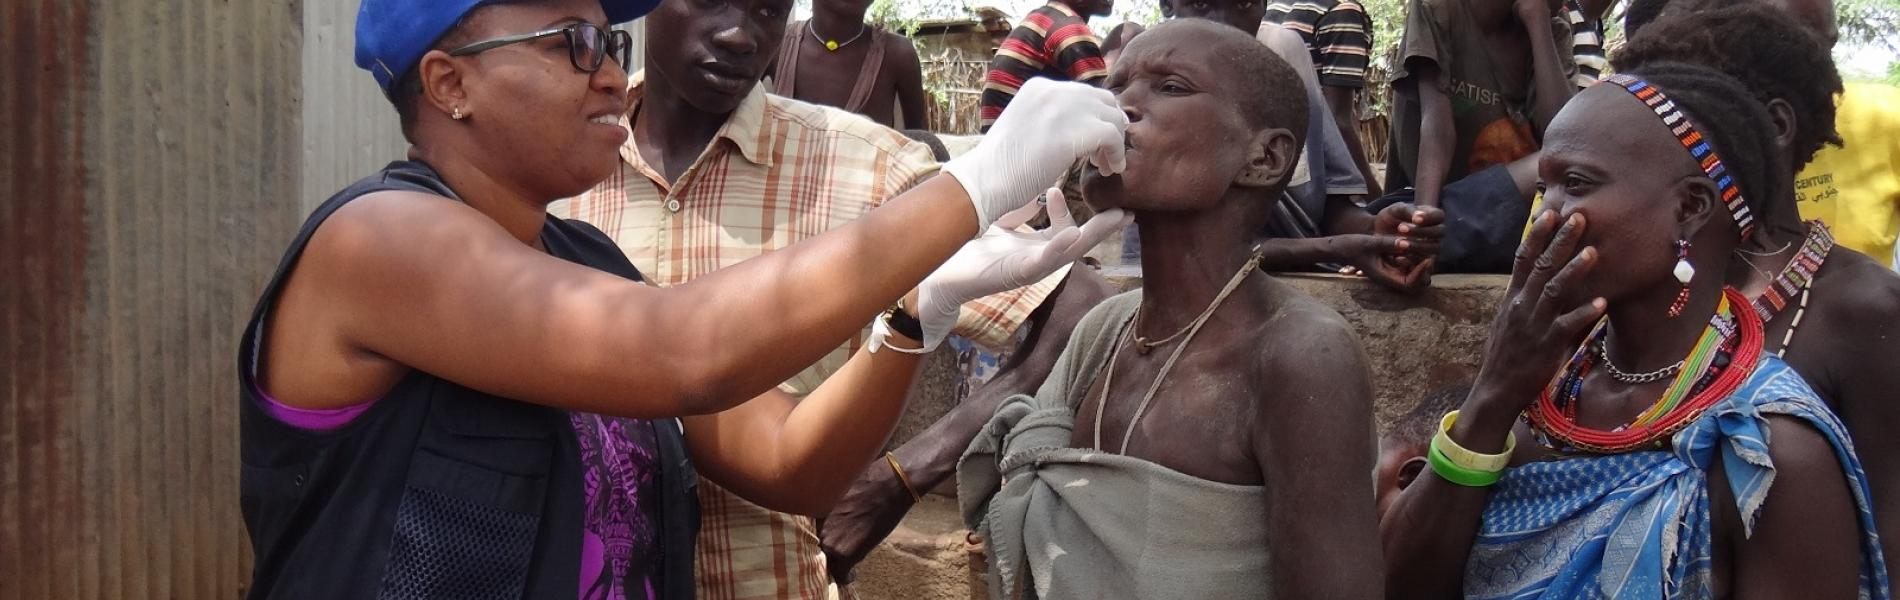 Oral Cholera Vaccination campaign to combat cholera in South Sudan concludes despite security and access challenges